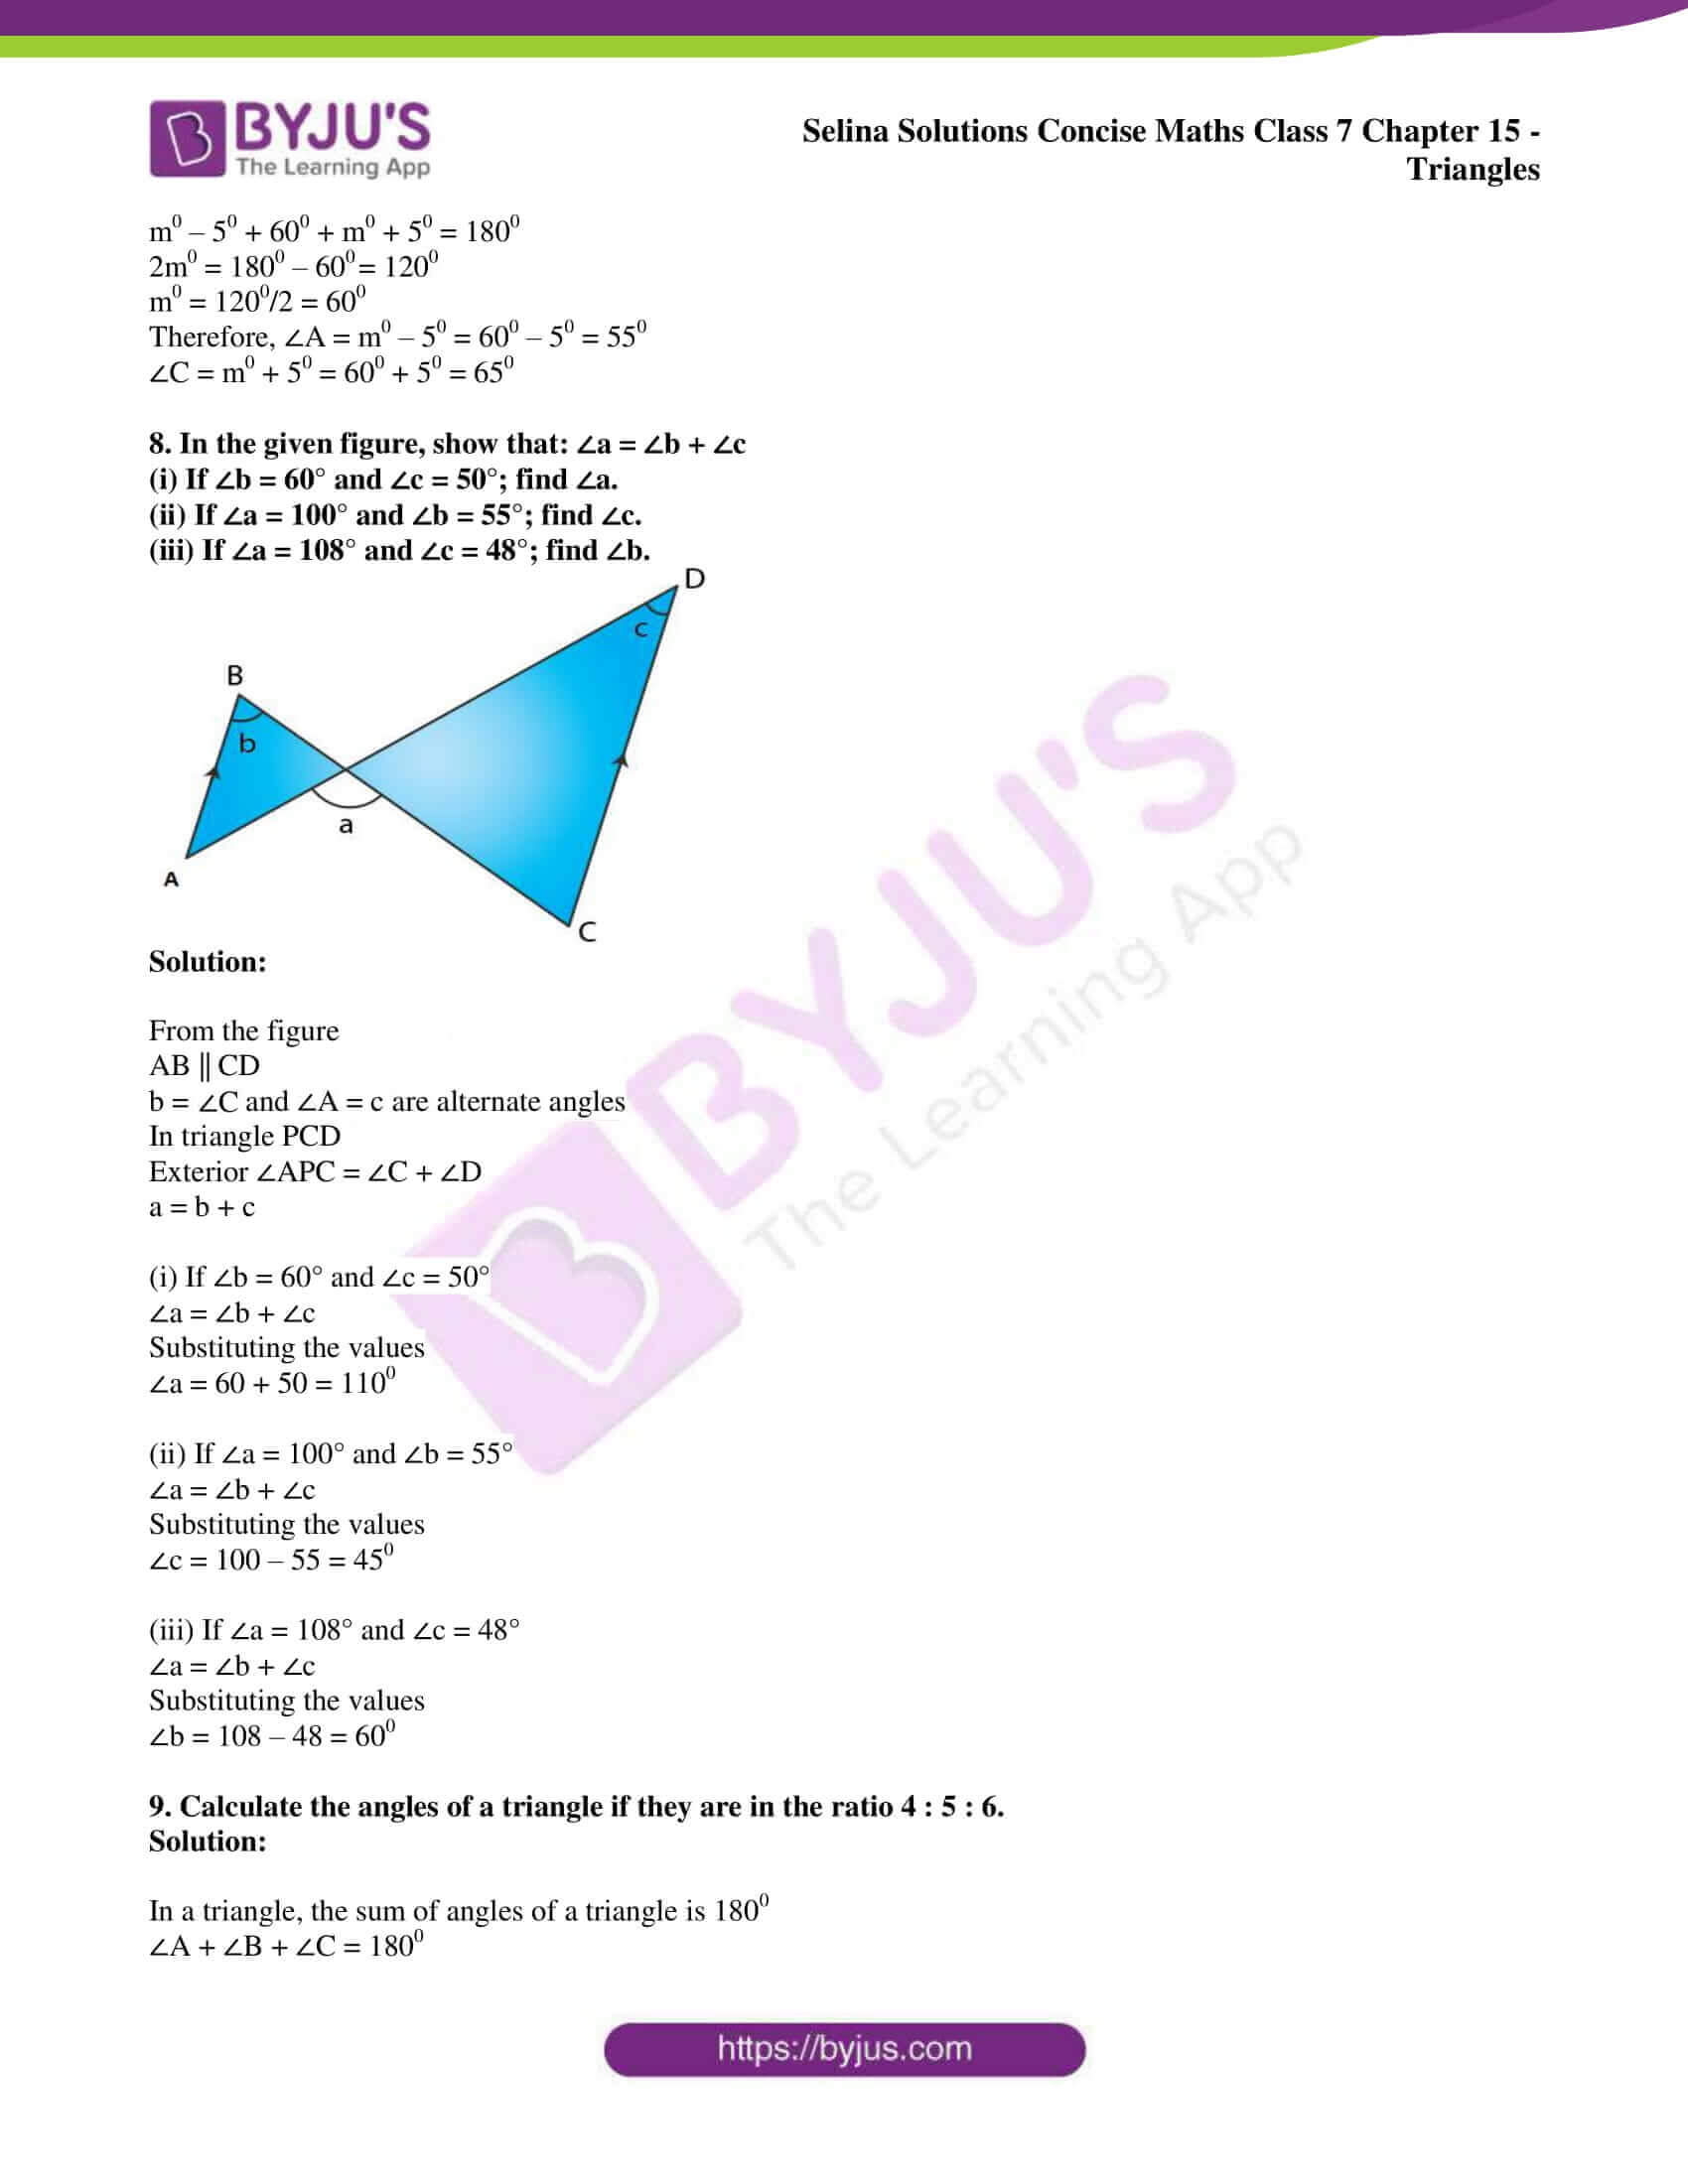 selina sol concise maths class 7 chapter 15 ex a 5